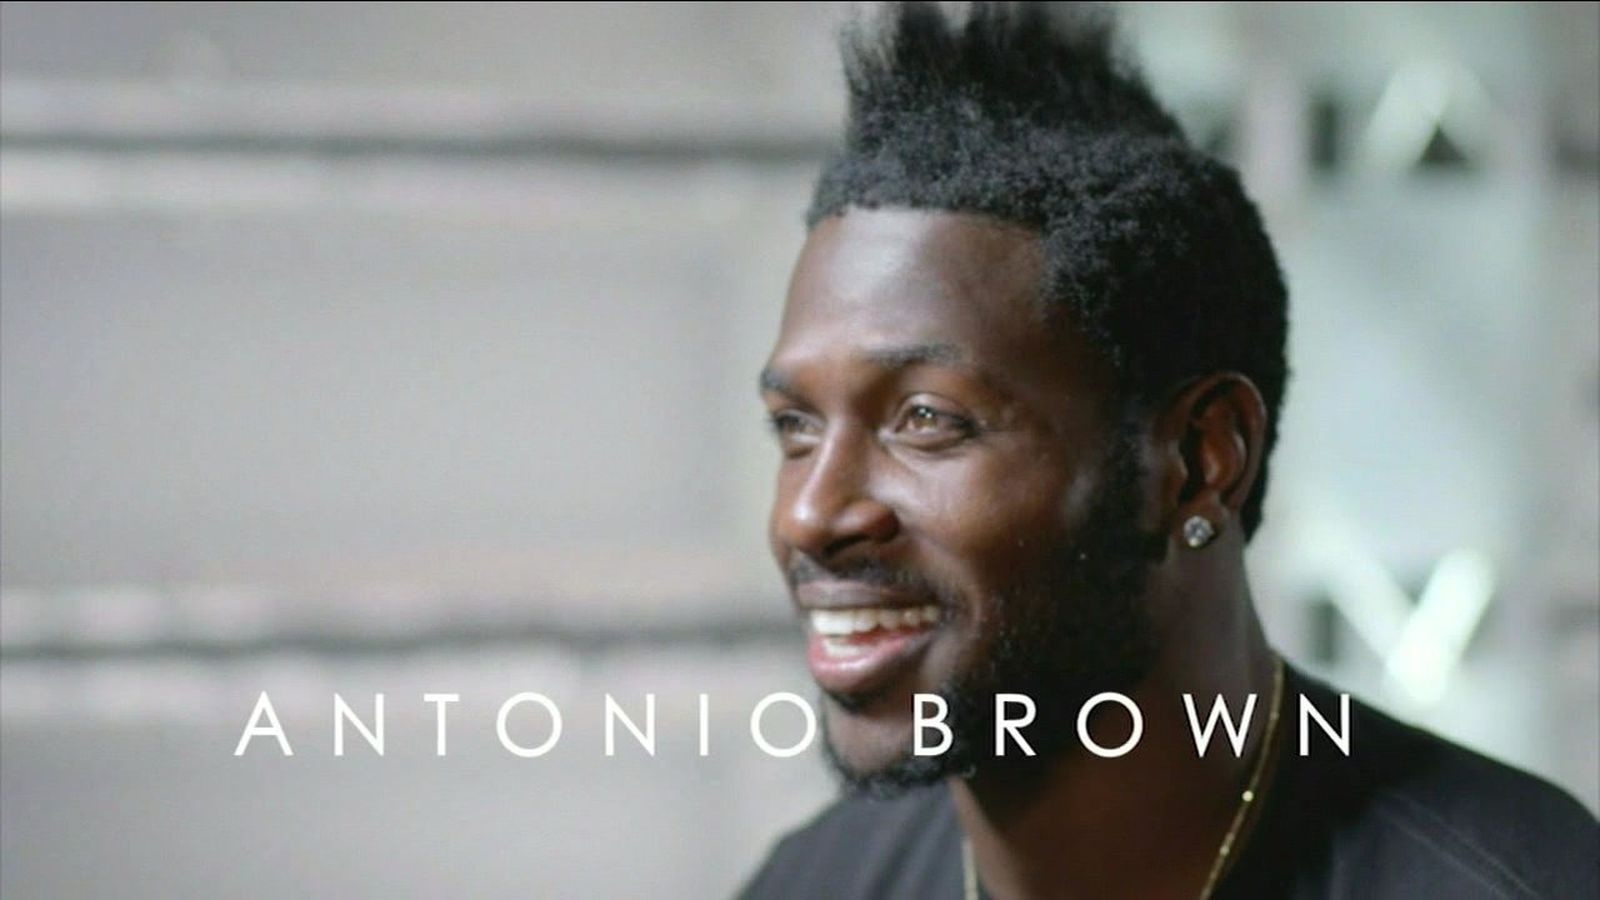 Antonio Brown grew a mohawk because he39;s 39;trying to be a TRex